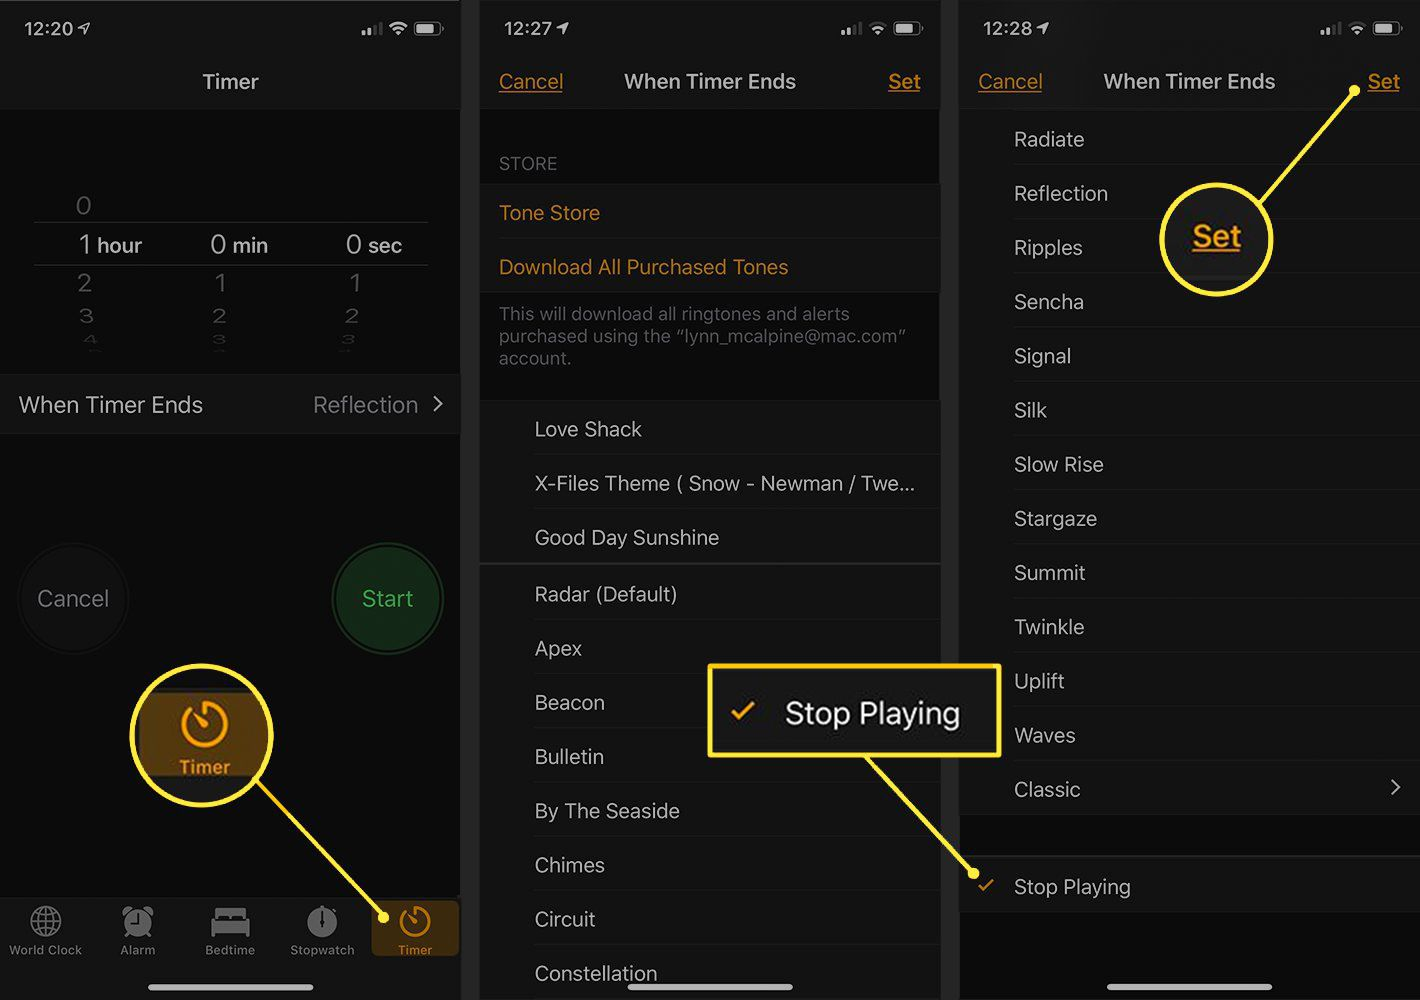 Timer, Stop Playing, and Set buttons in iOS Clock app